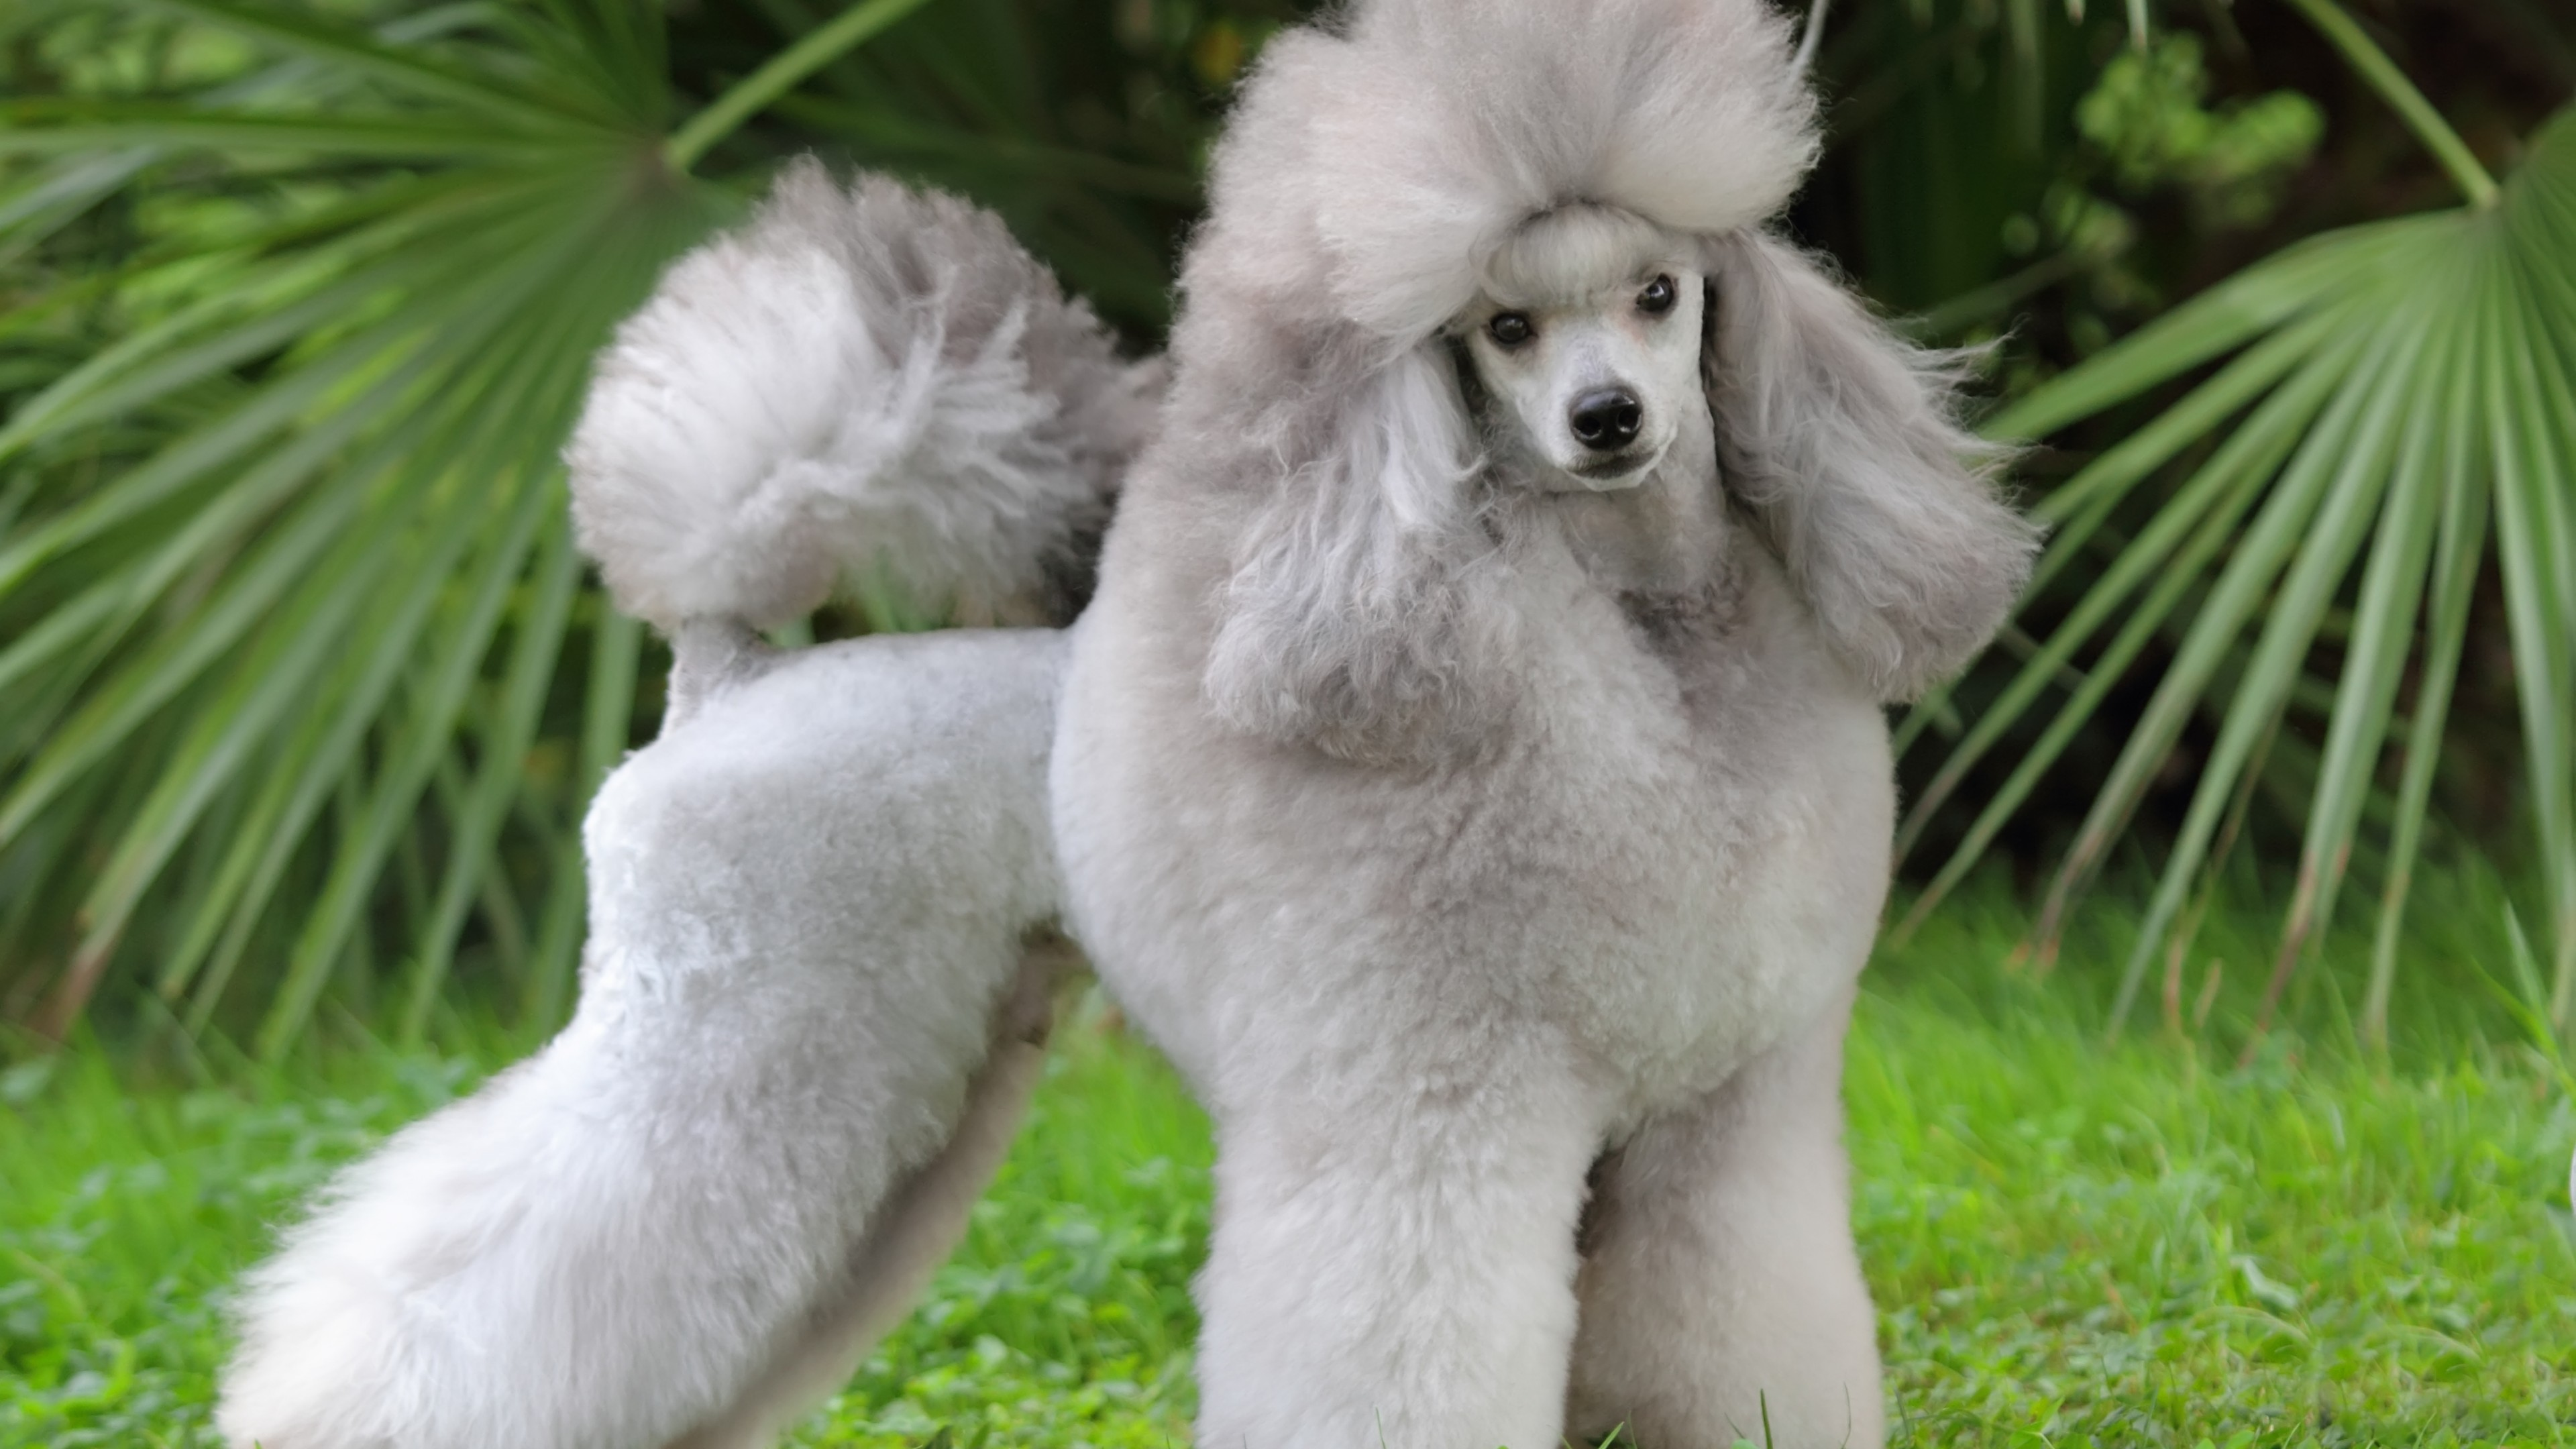 Cute Grey Wallpaper Wallpaper Poodle Grey Grass Cute Animals Animals 10144